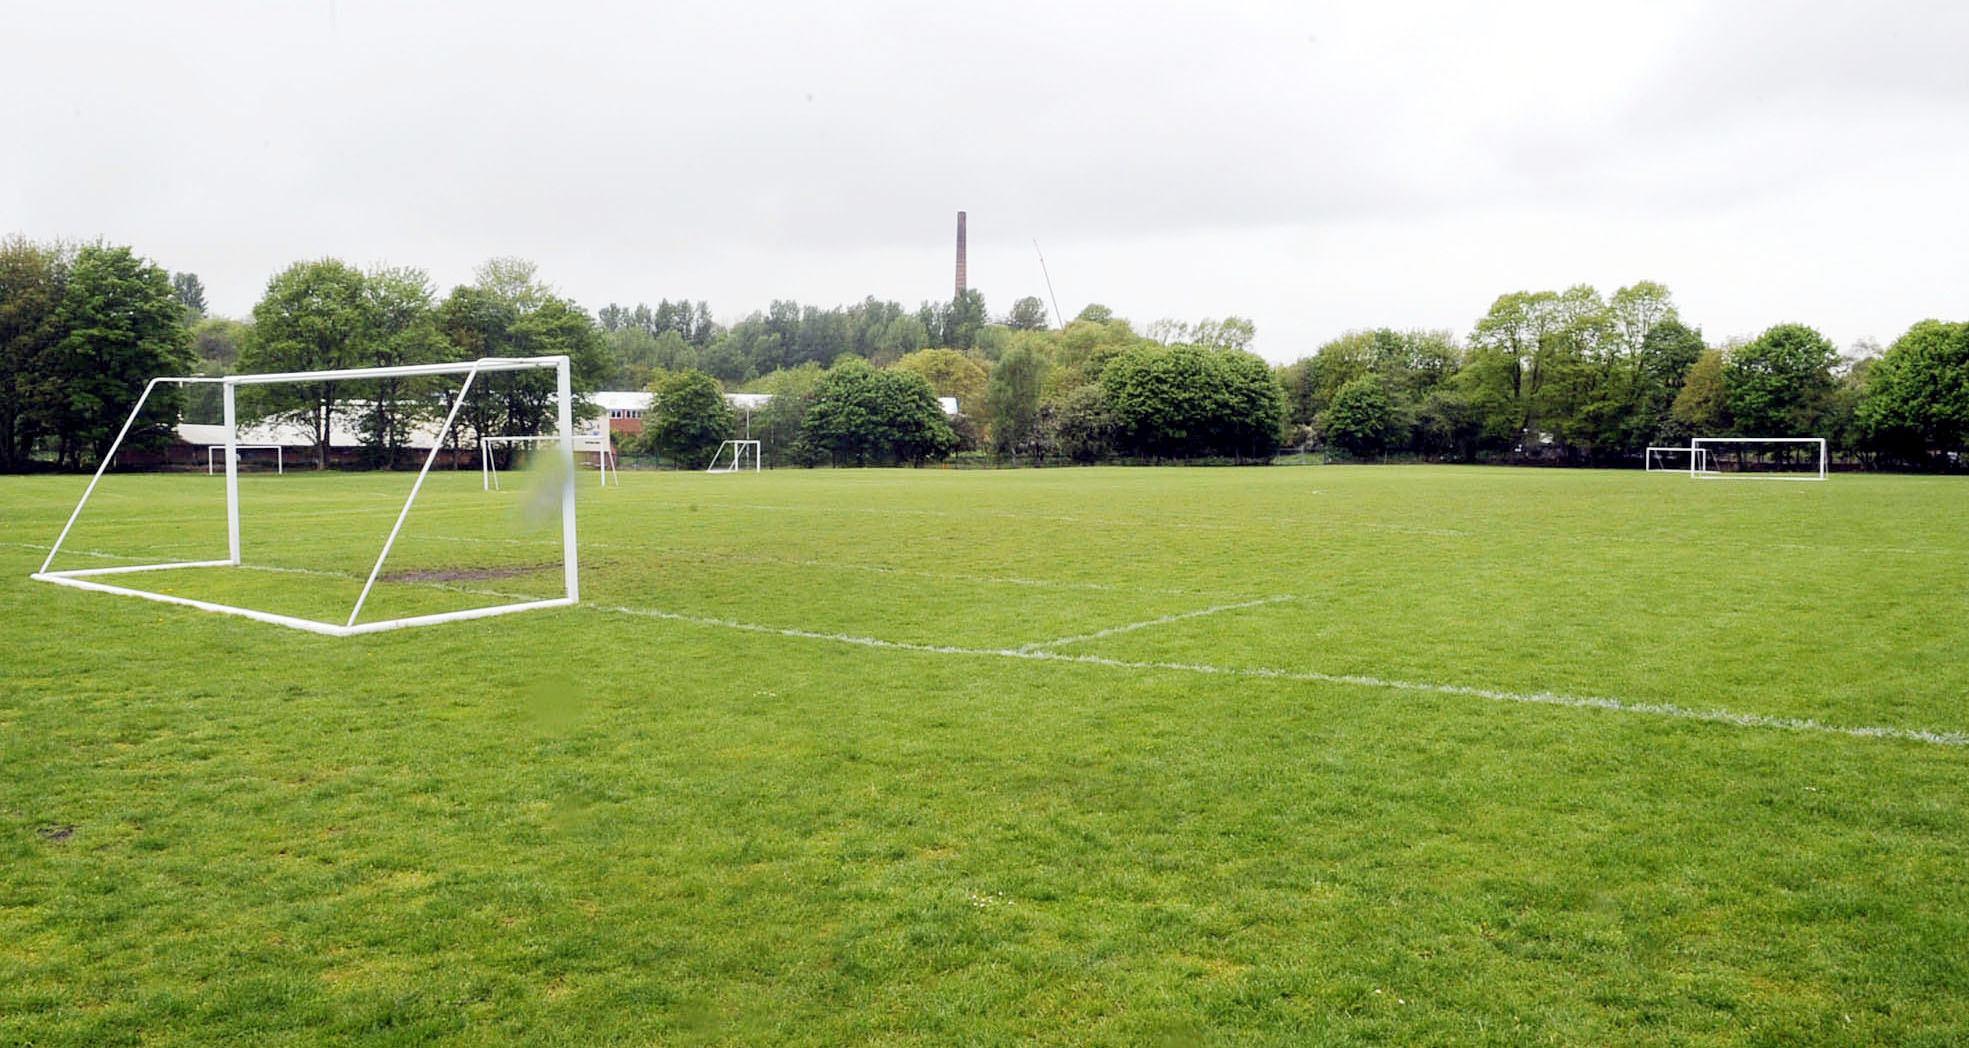 New £200,000 sports facility to be built in Hacken Lane